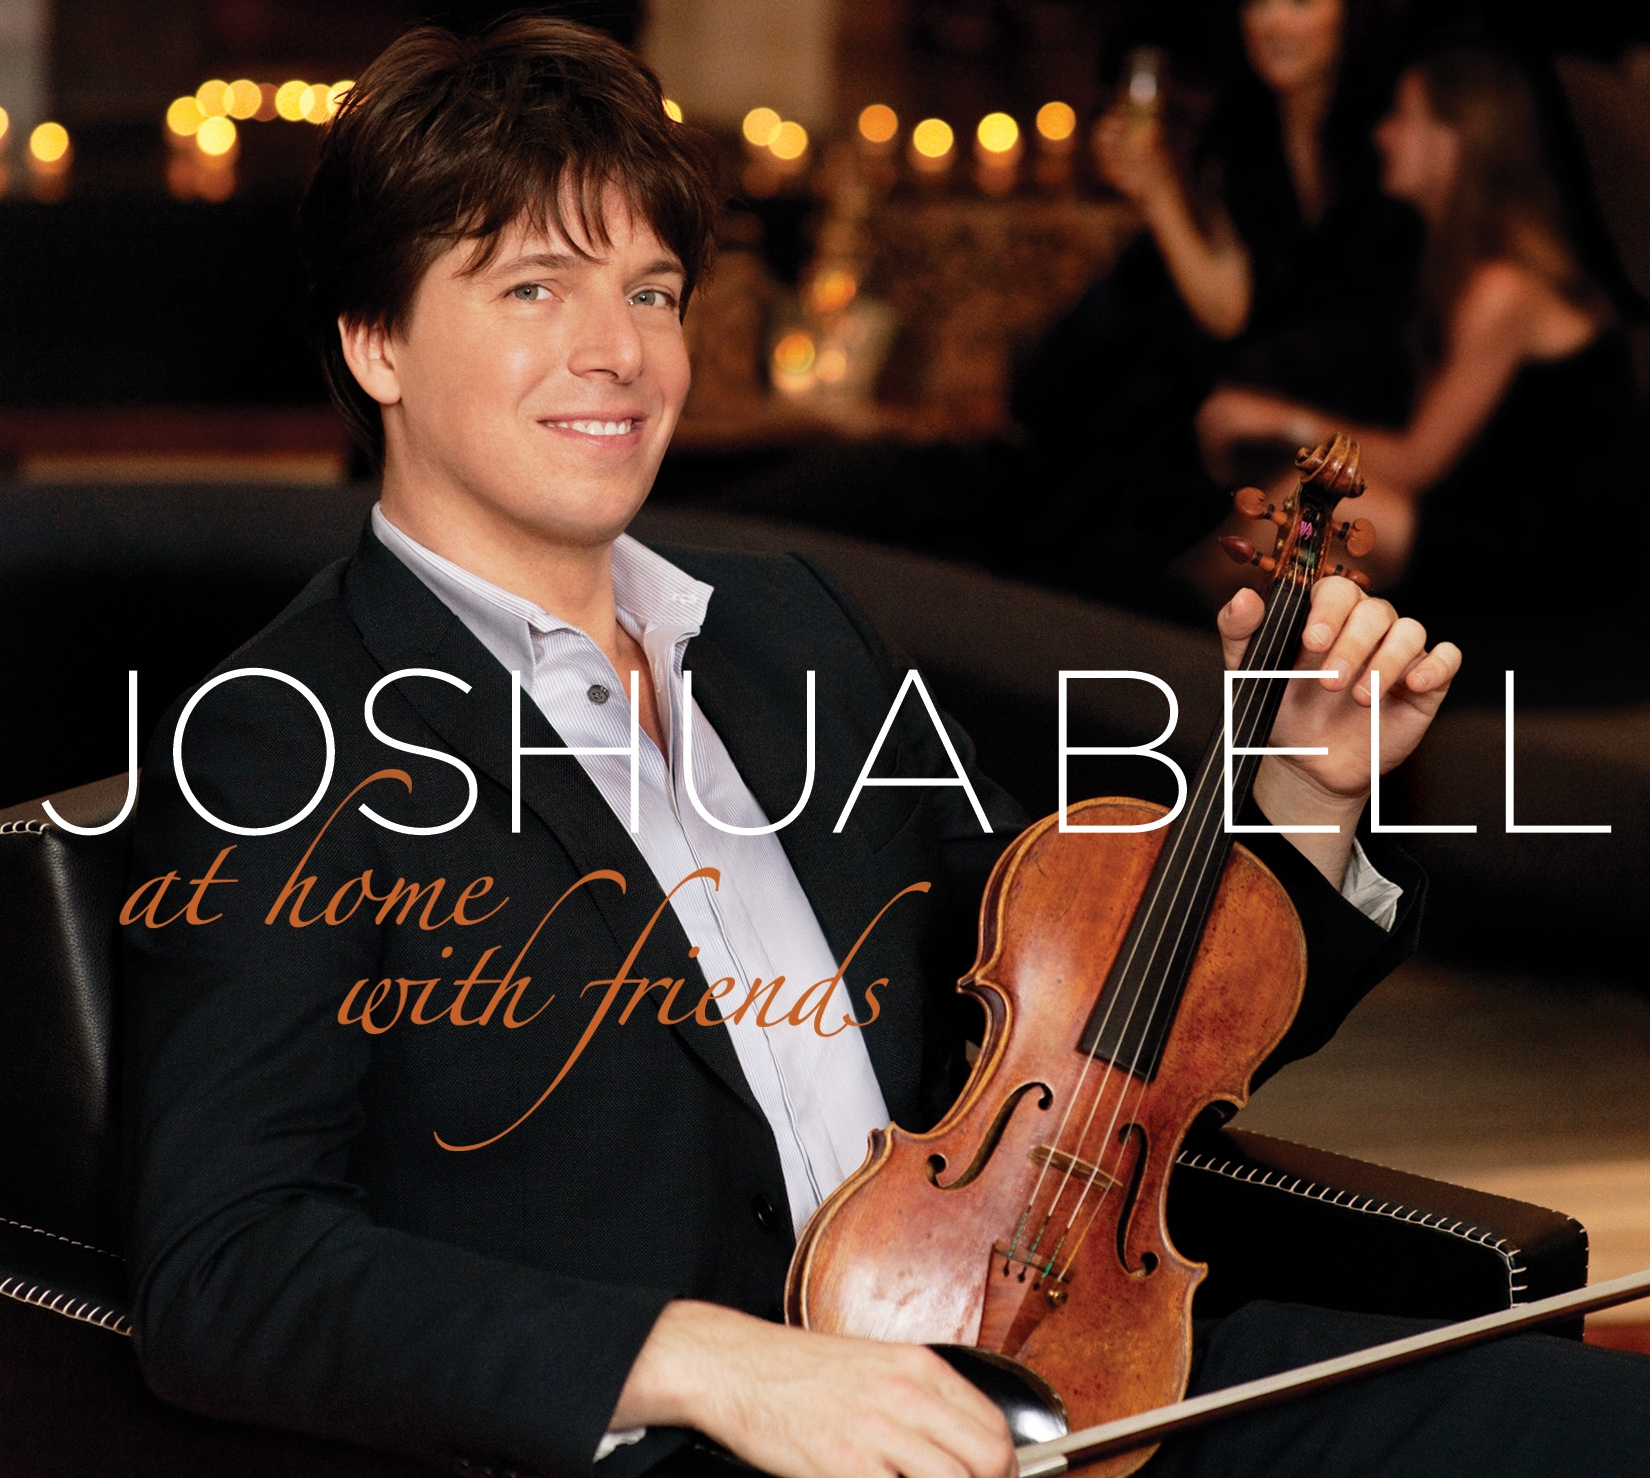 Joshua-Bell-At-Home-with-Friends-Cover-Art